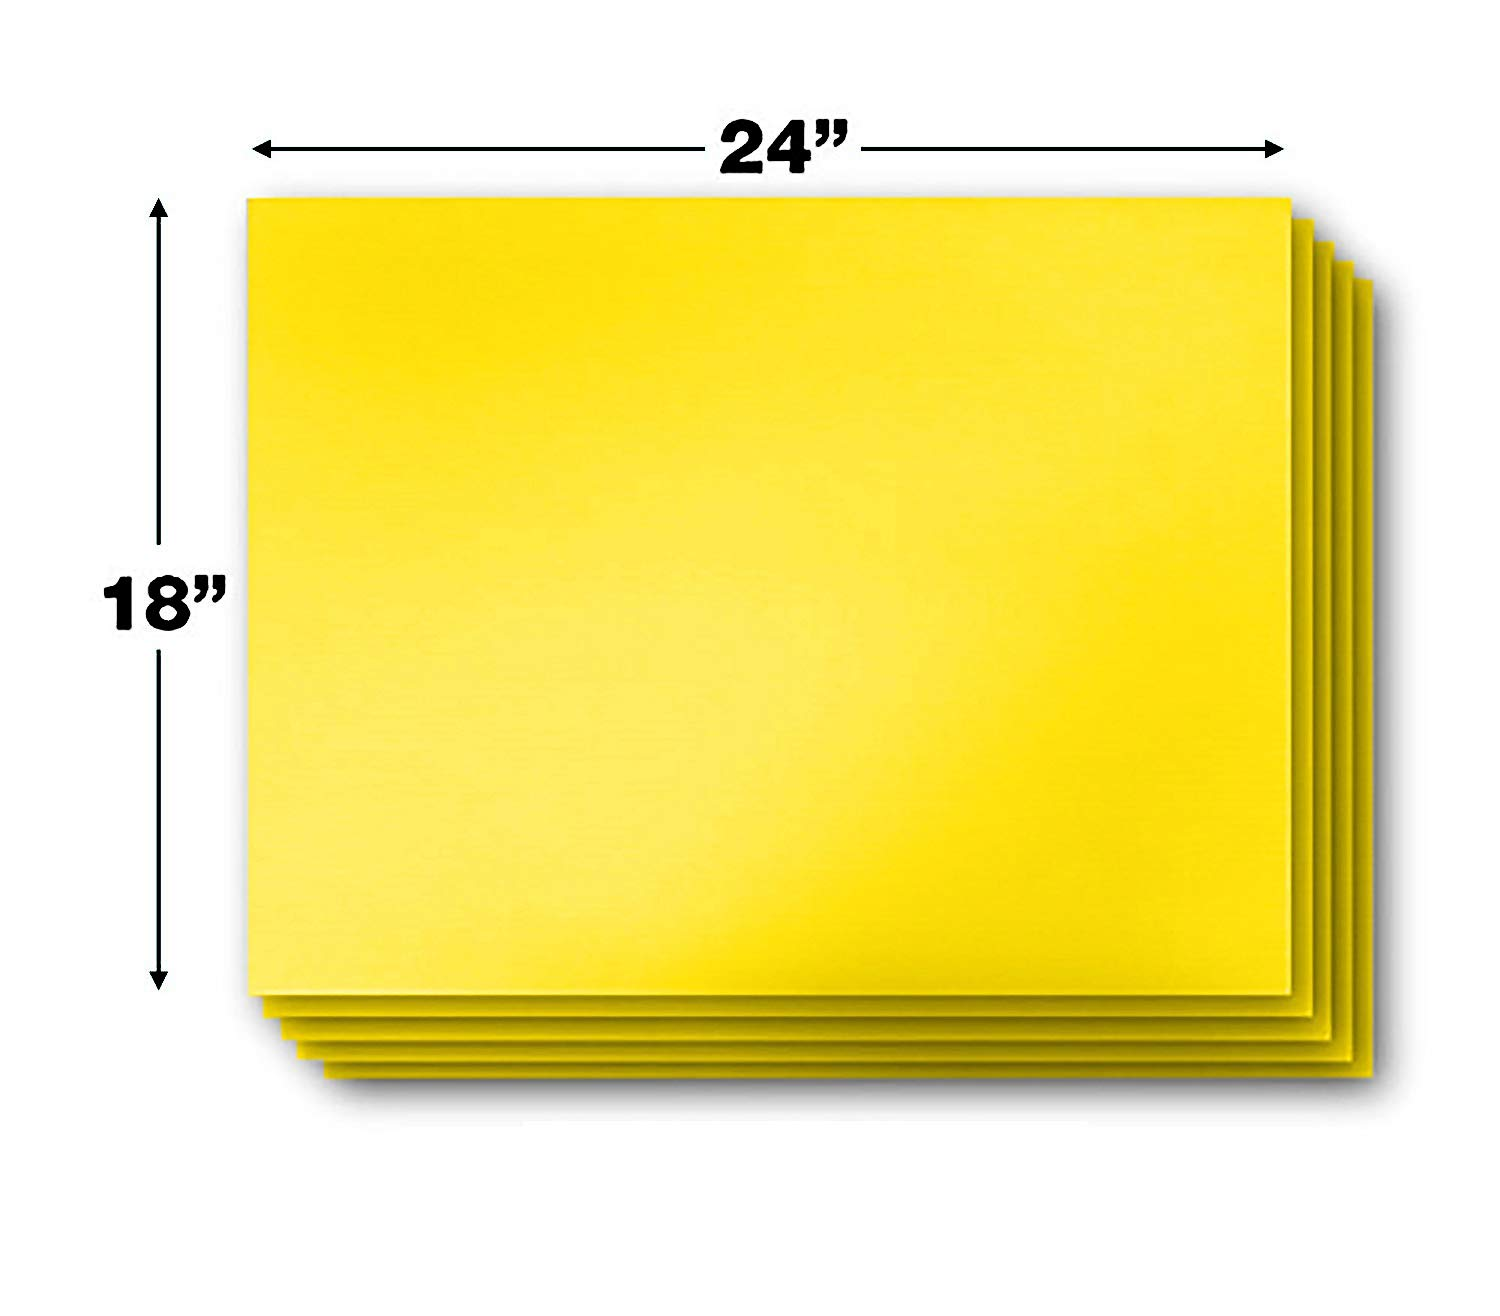 Vibe Ink Pack of Blank Yellow Yard Signs 18x24 with H-Stakes for Garage Sale, for Rent, Open House, Estate Sale, Now Hiring, or Political Lawn Signs (25) by Vibe Ink (Image #3)